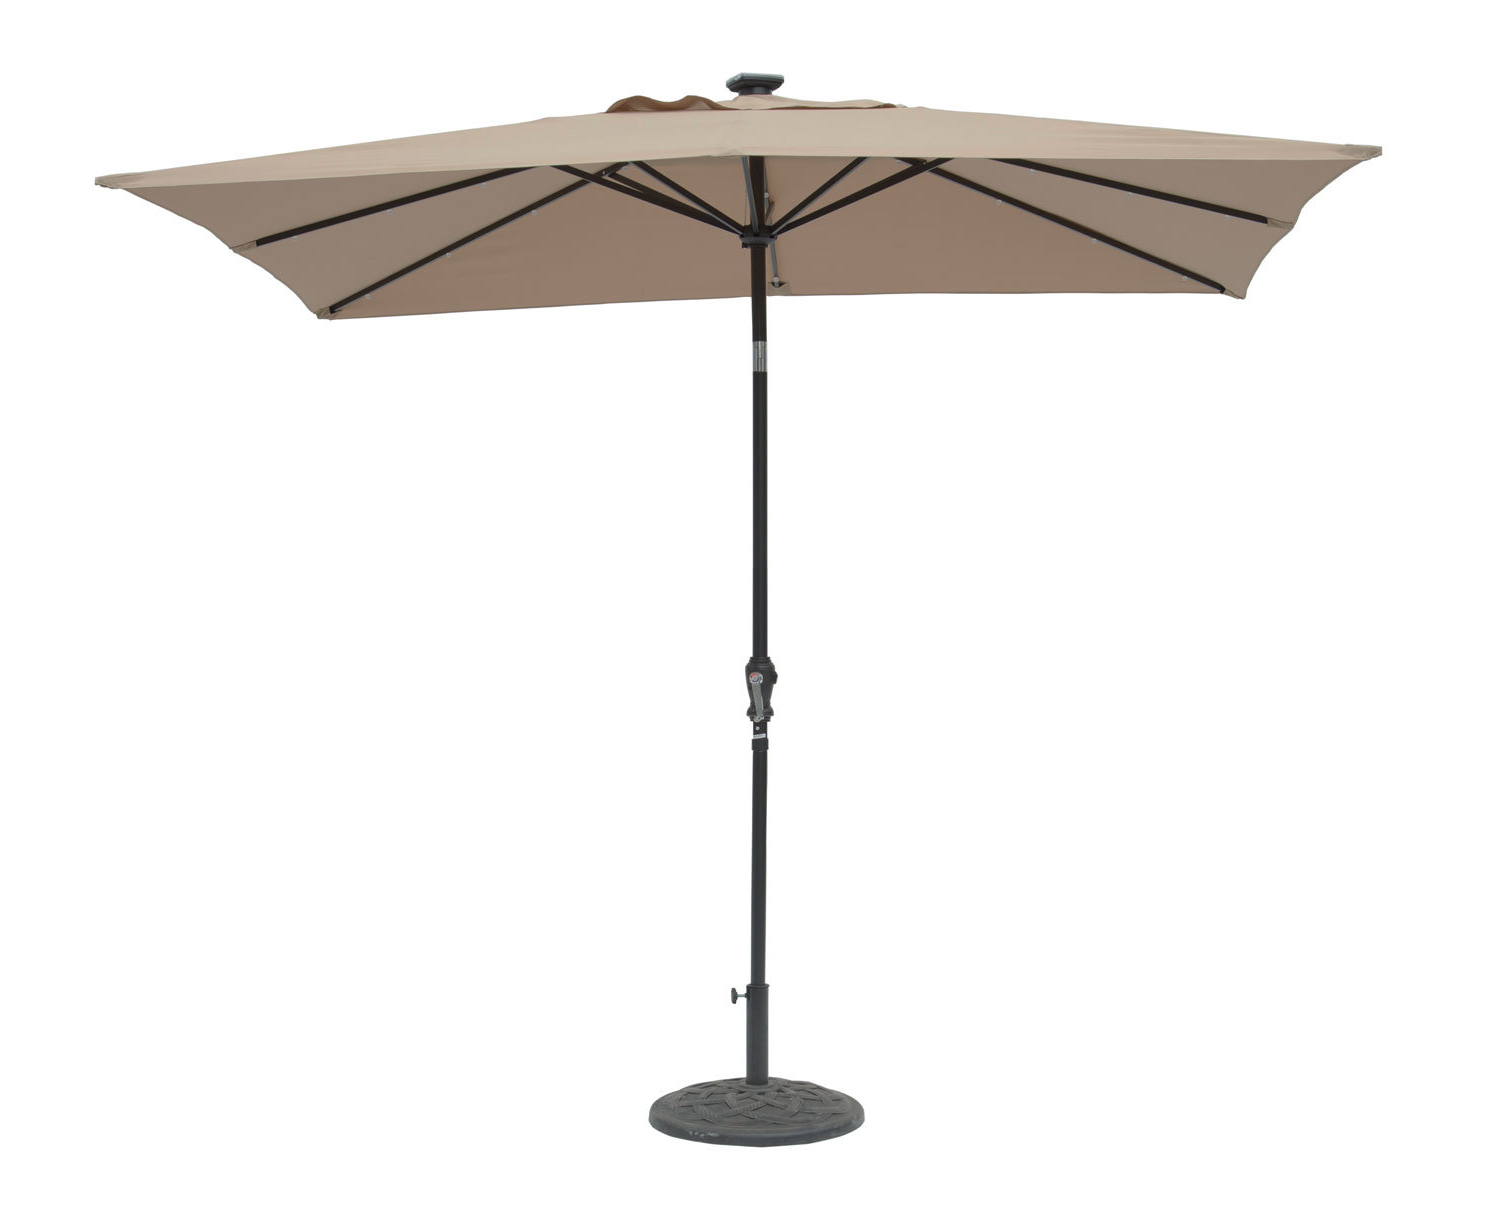 Kamila 9' X 7' Rectangular Lighted Umbrella With Most Recent Cordelia Rectangular Market Umbrellas (View 12 of 20)